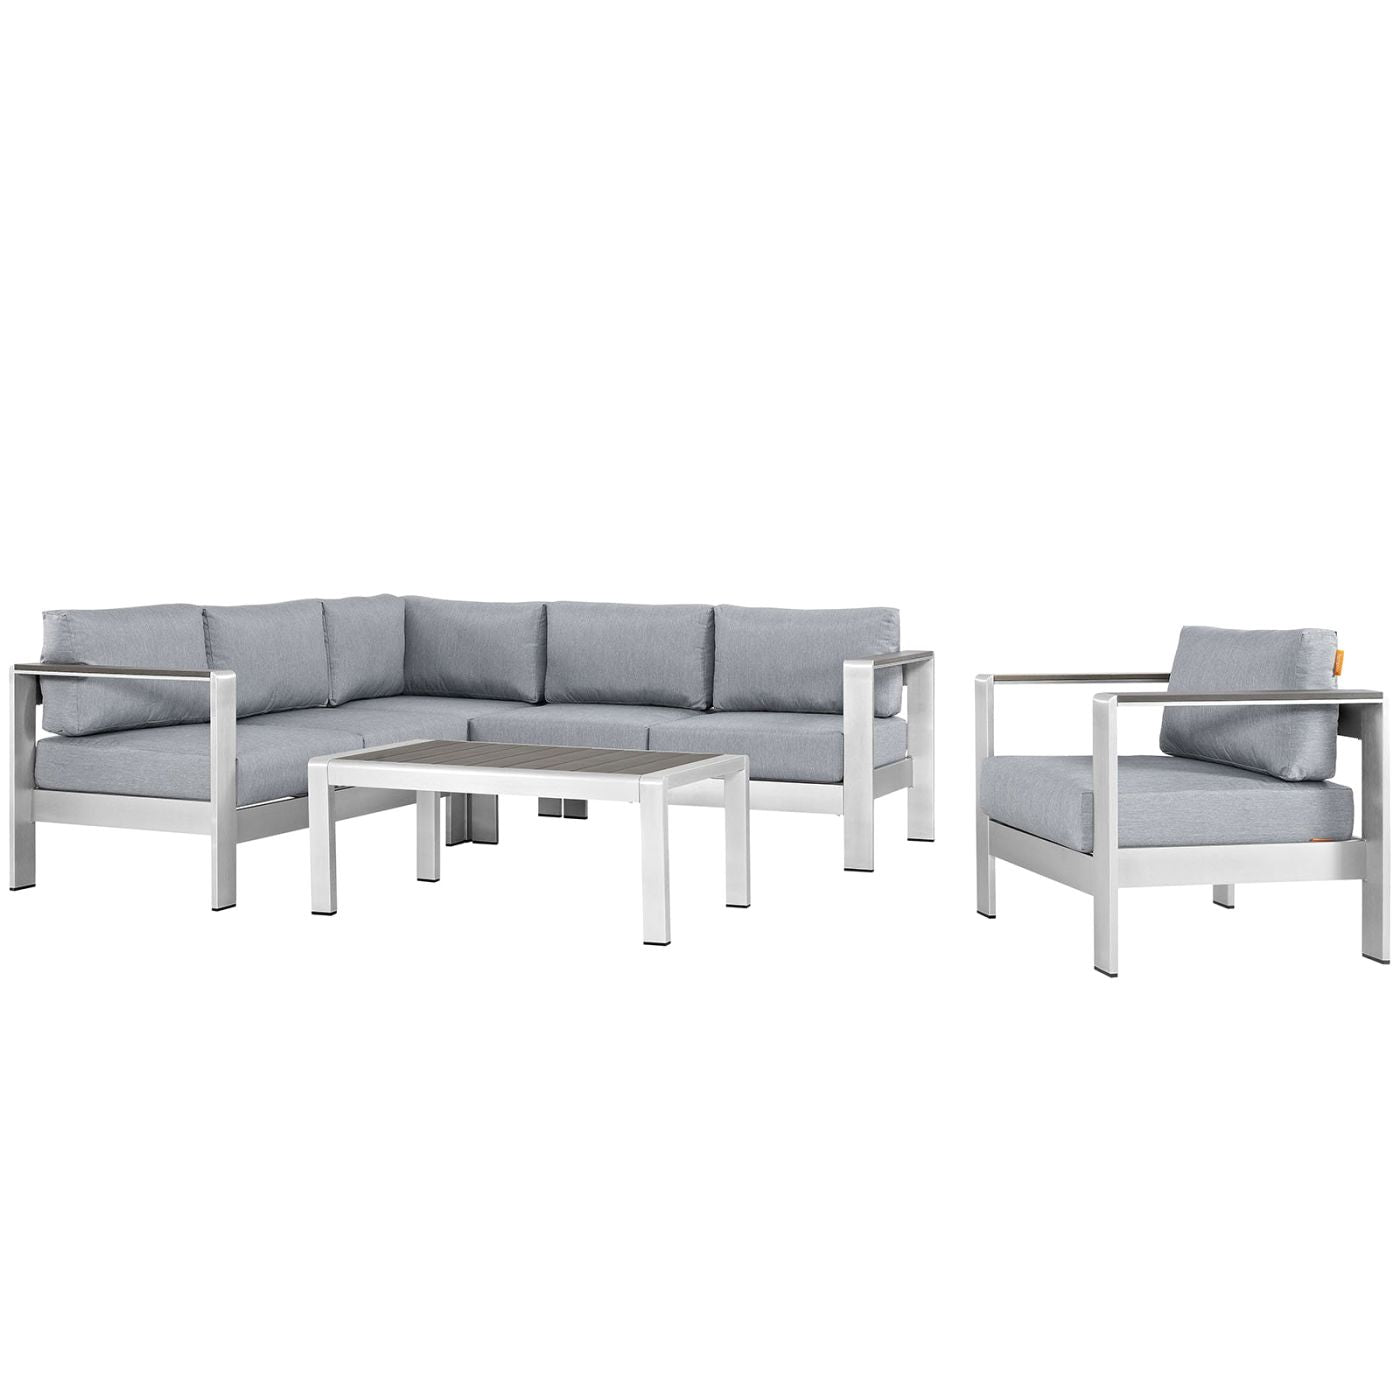 Stupendous Modway Outdoor Patio Sets On Sale Eei 2560 Slv Gry Shore 5 Piece Outdoor Patio Aluminum Sectional Sofa Set Only Only 1 917 30 At Contemporary Caraccident5 Cool Chair Designs And Ideas Caraccident5Info